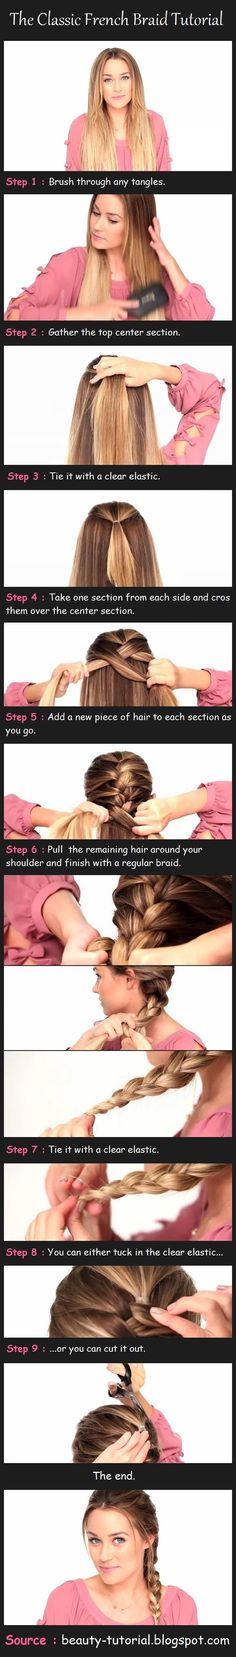 The conundrum of the french braid made easy...love me some LC!